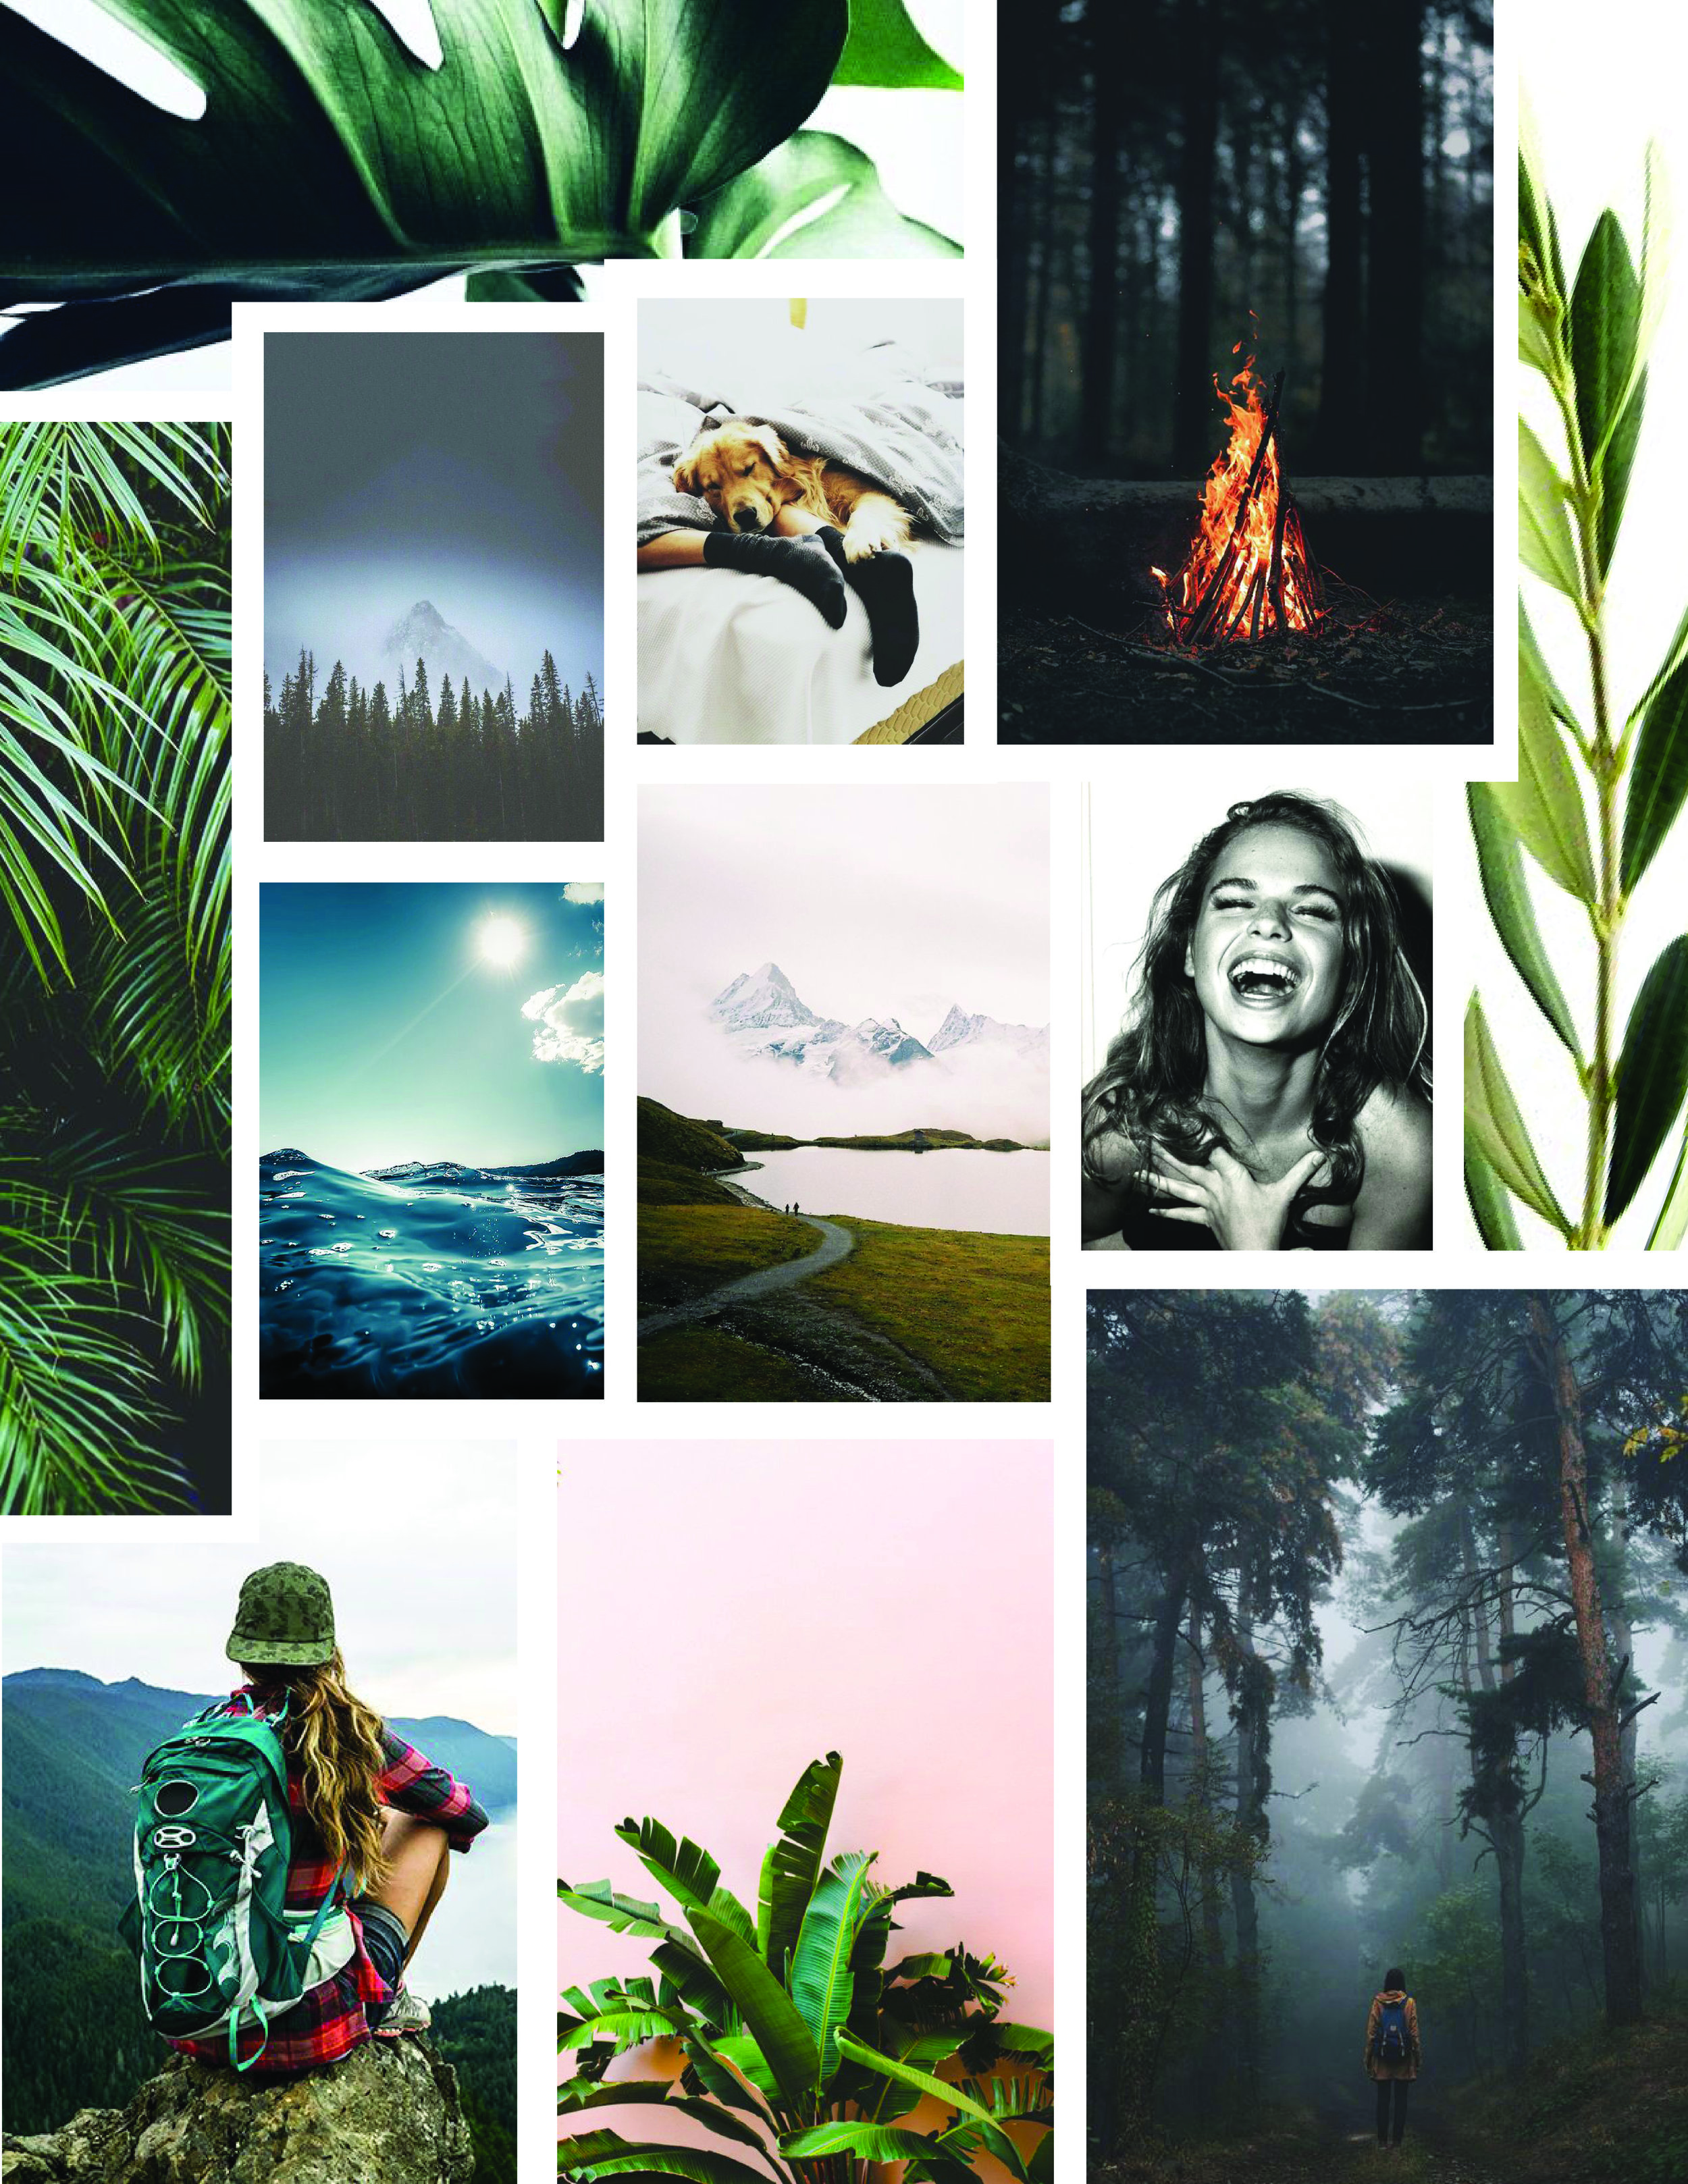 Mood board - Because every good branding is part of a process and mood boards are a precious tool in the journey.